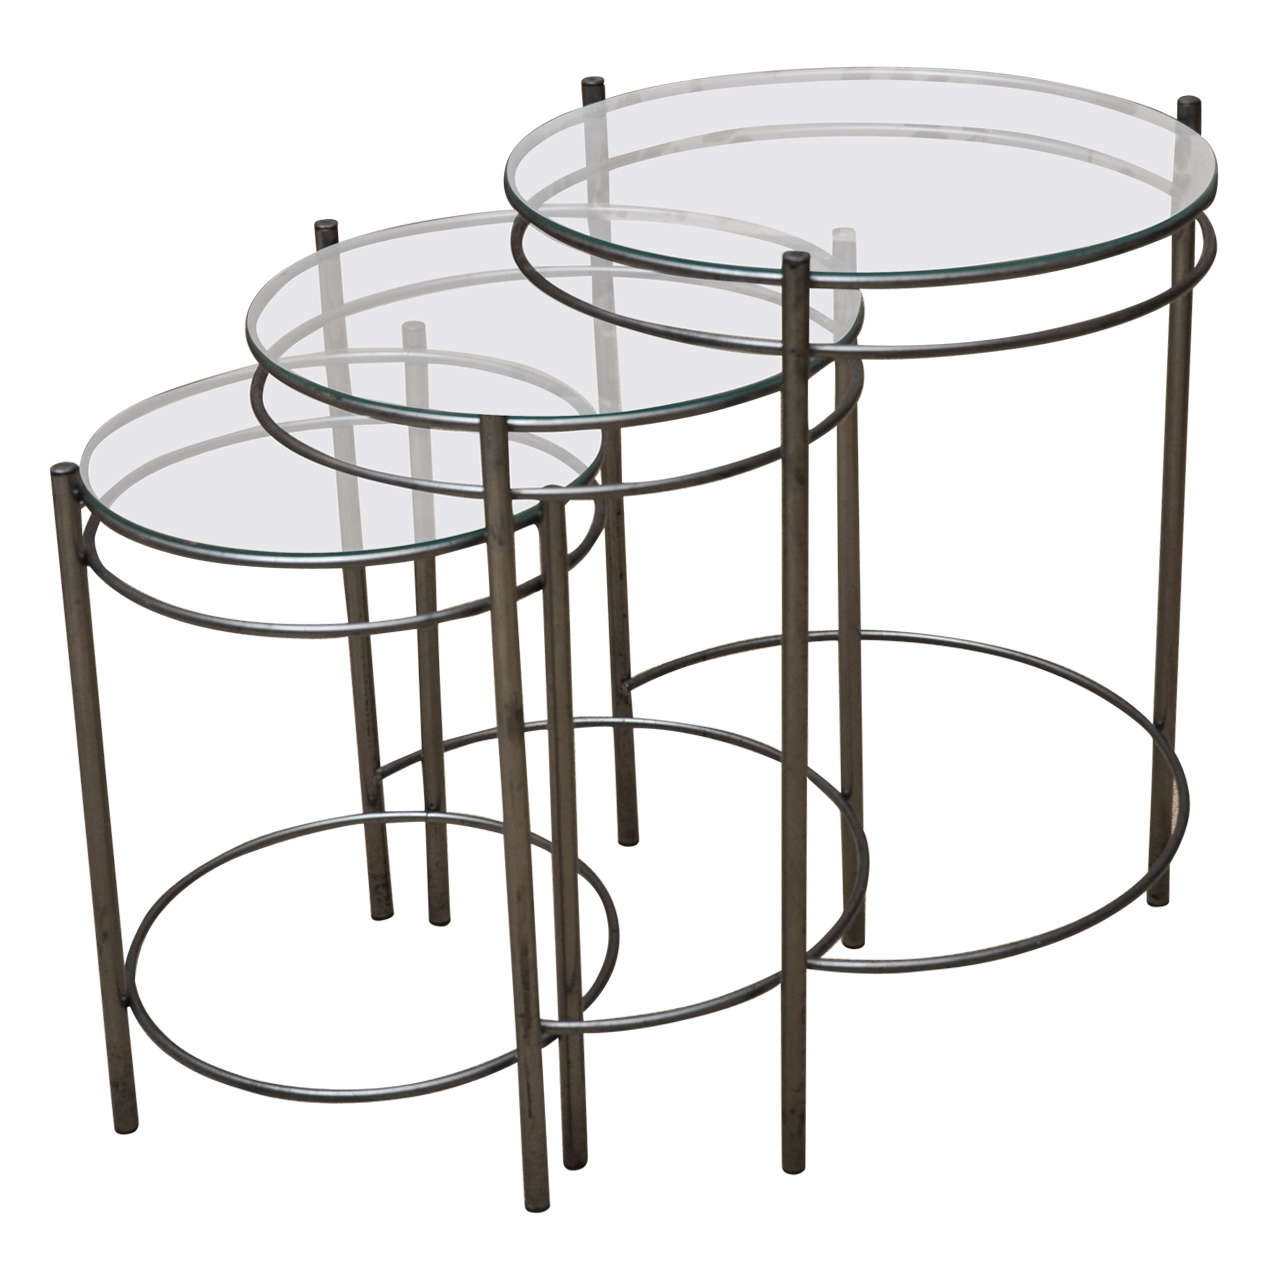 Glass Nesting Tables ~ Set of three metal and glass round nesting tables at stdibs